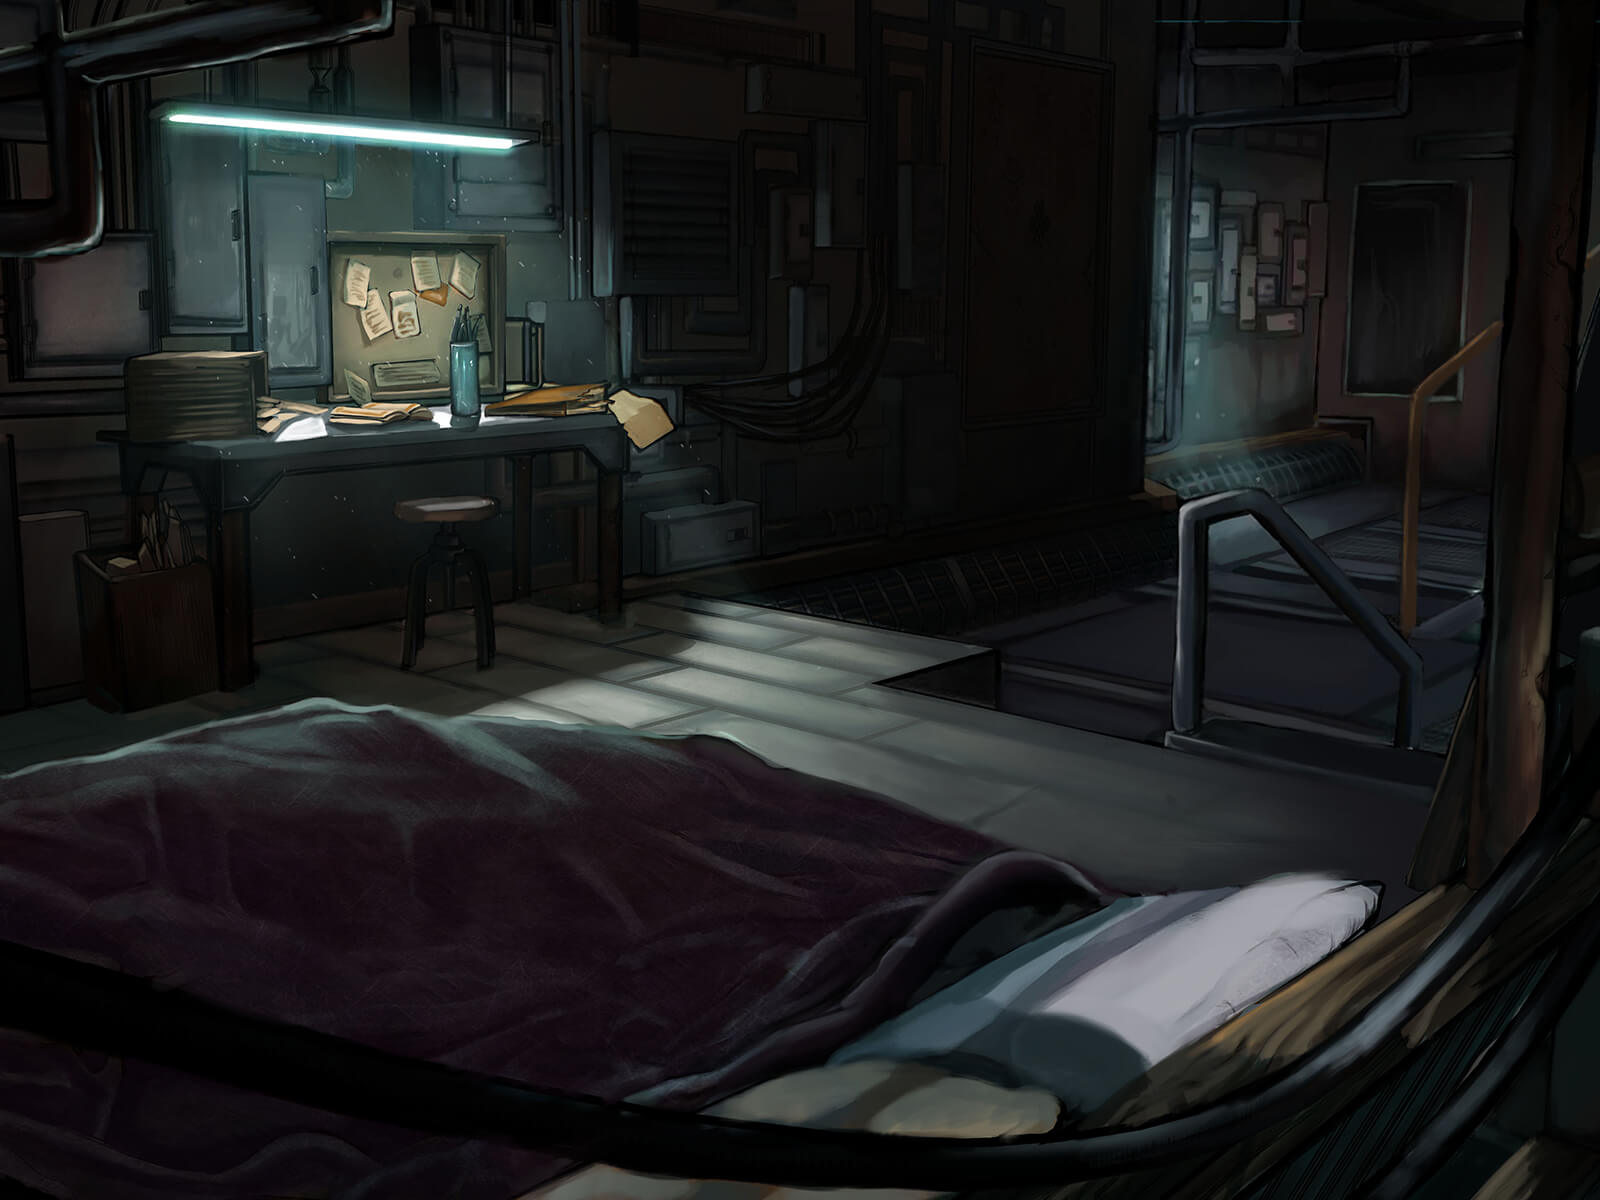 digital painting of a bed and desk in a dark, industrial-type setting